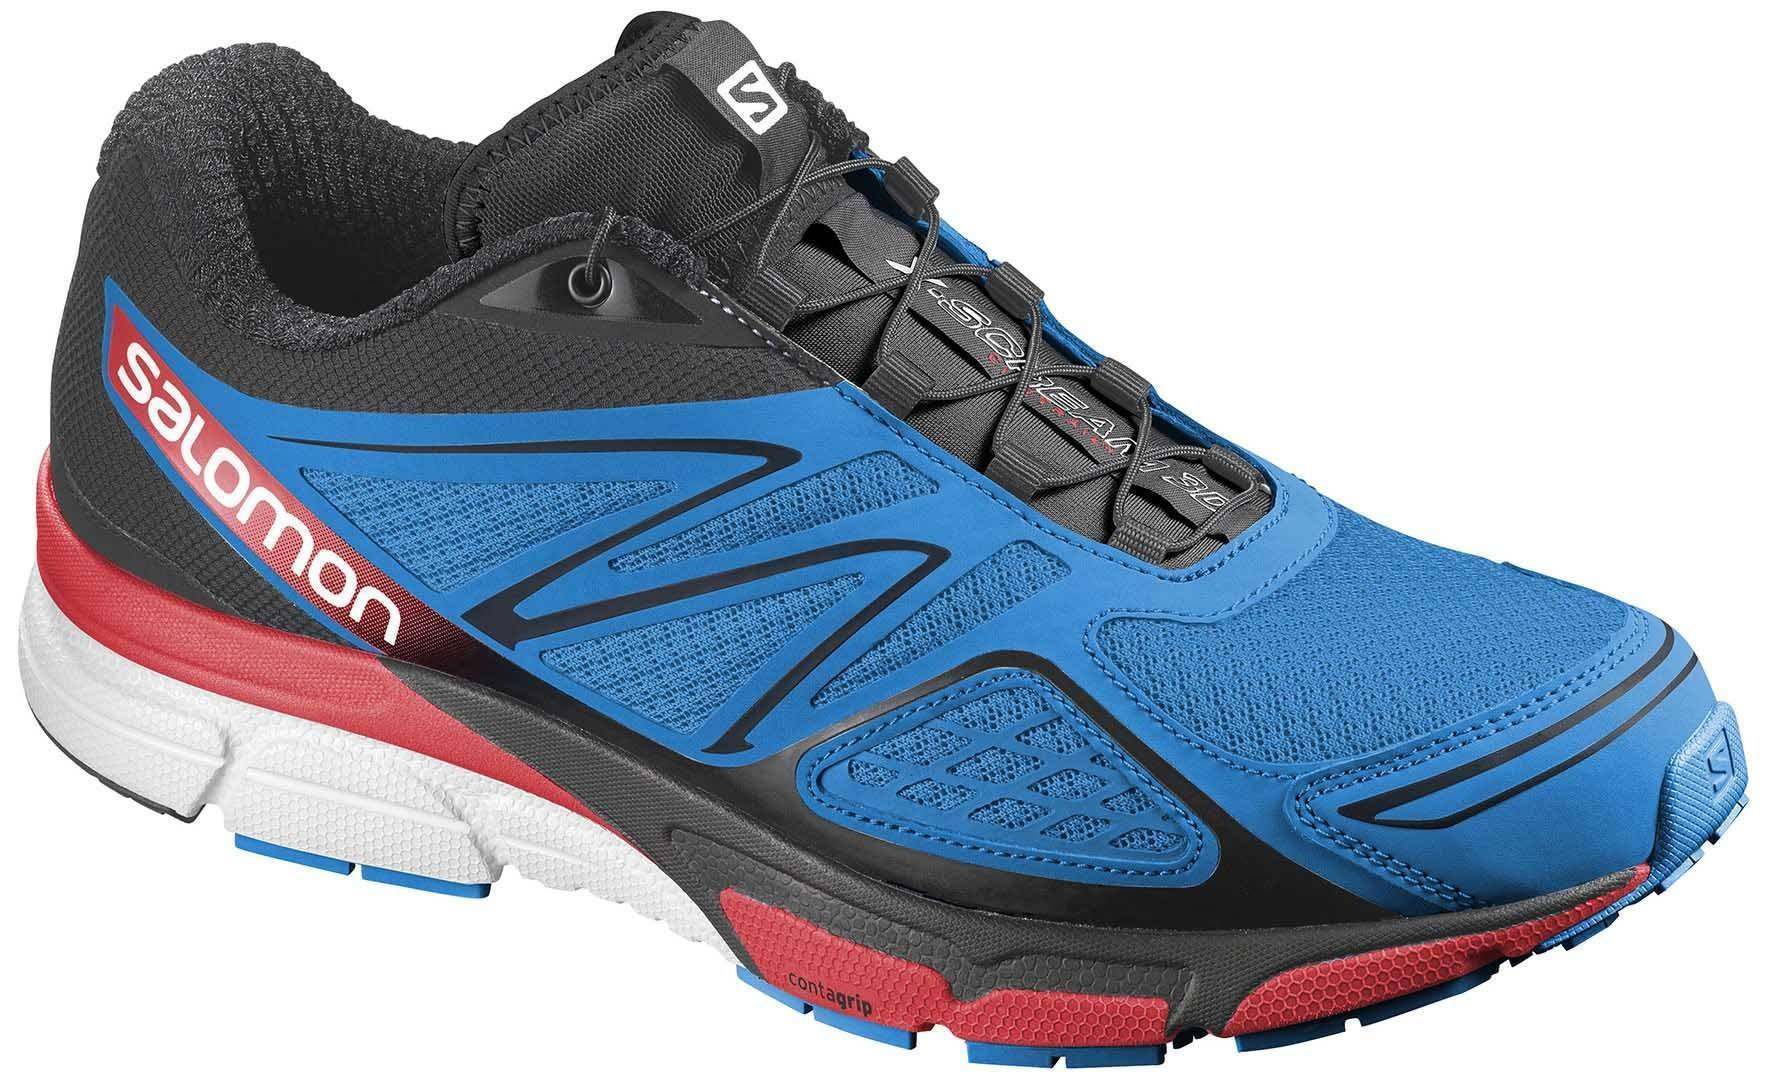 Salomon X-Scream 3 D Bleu/Noir/Rouge 9.5 (44)